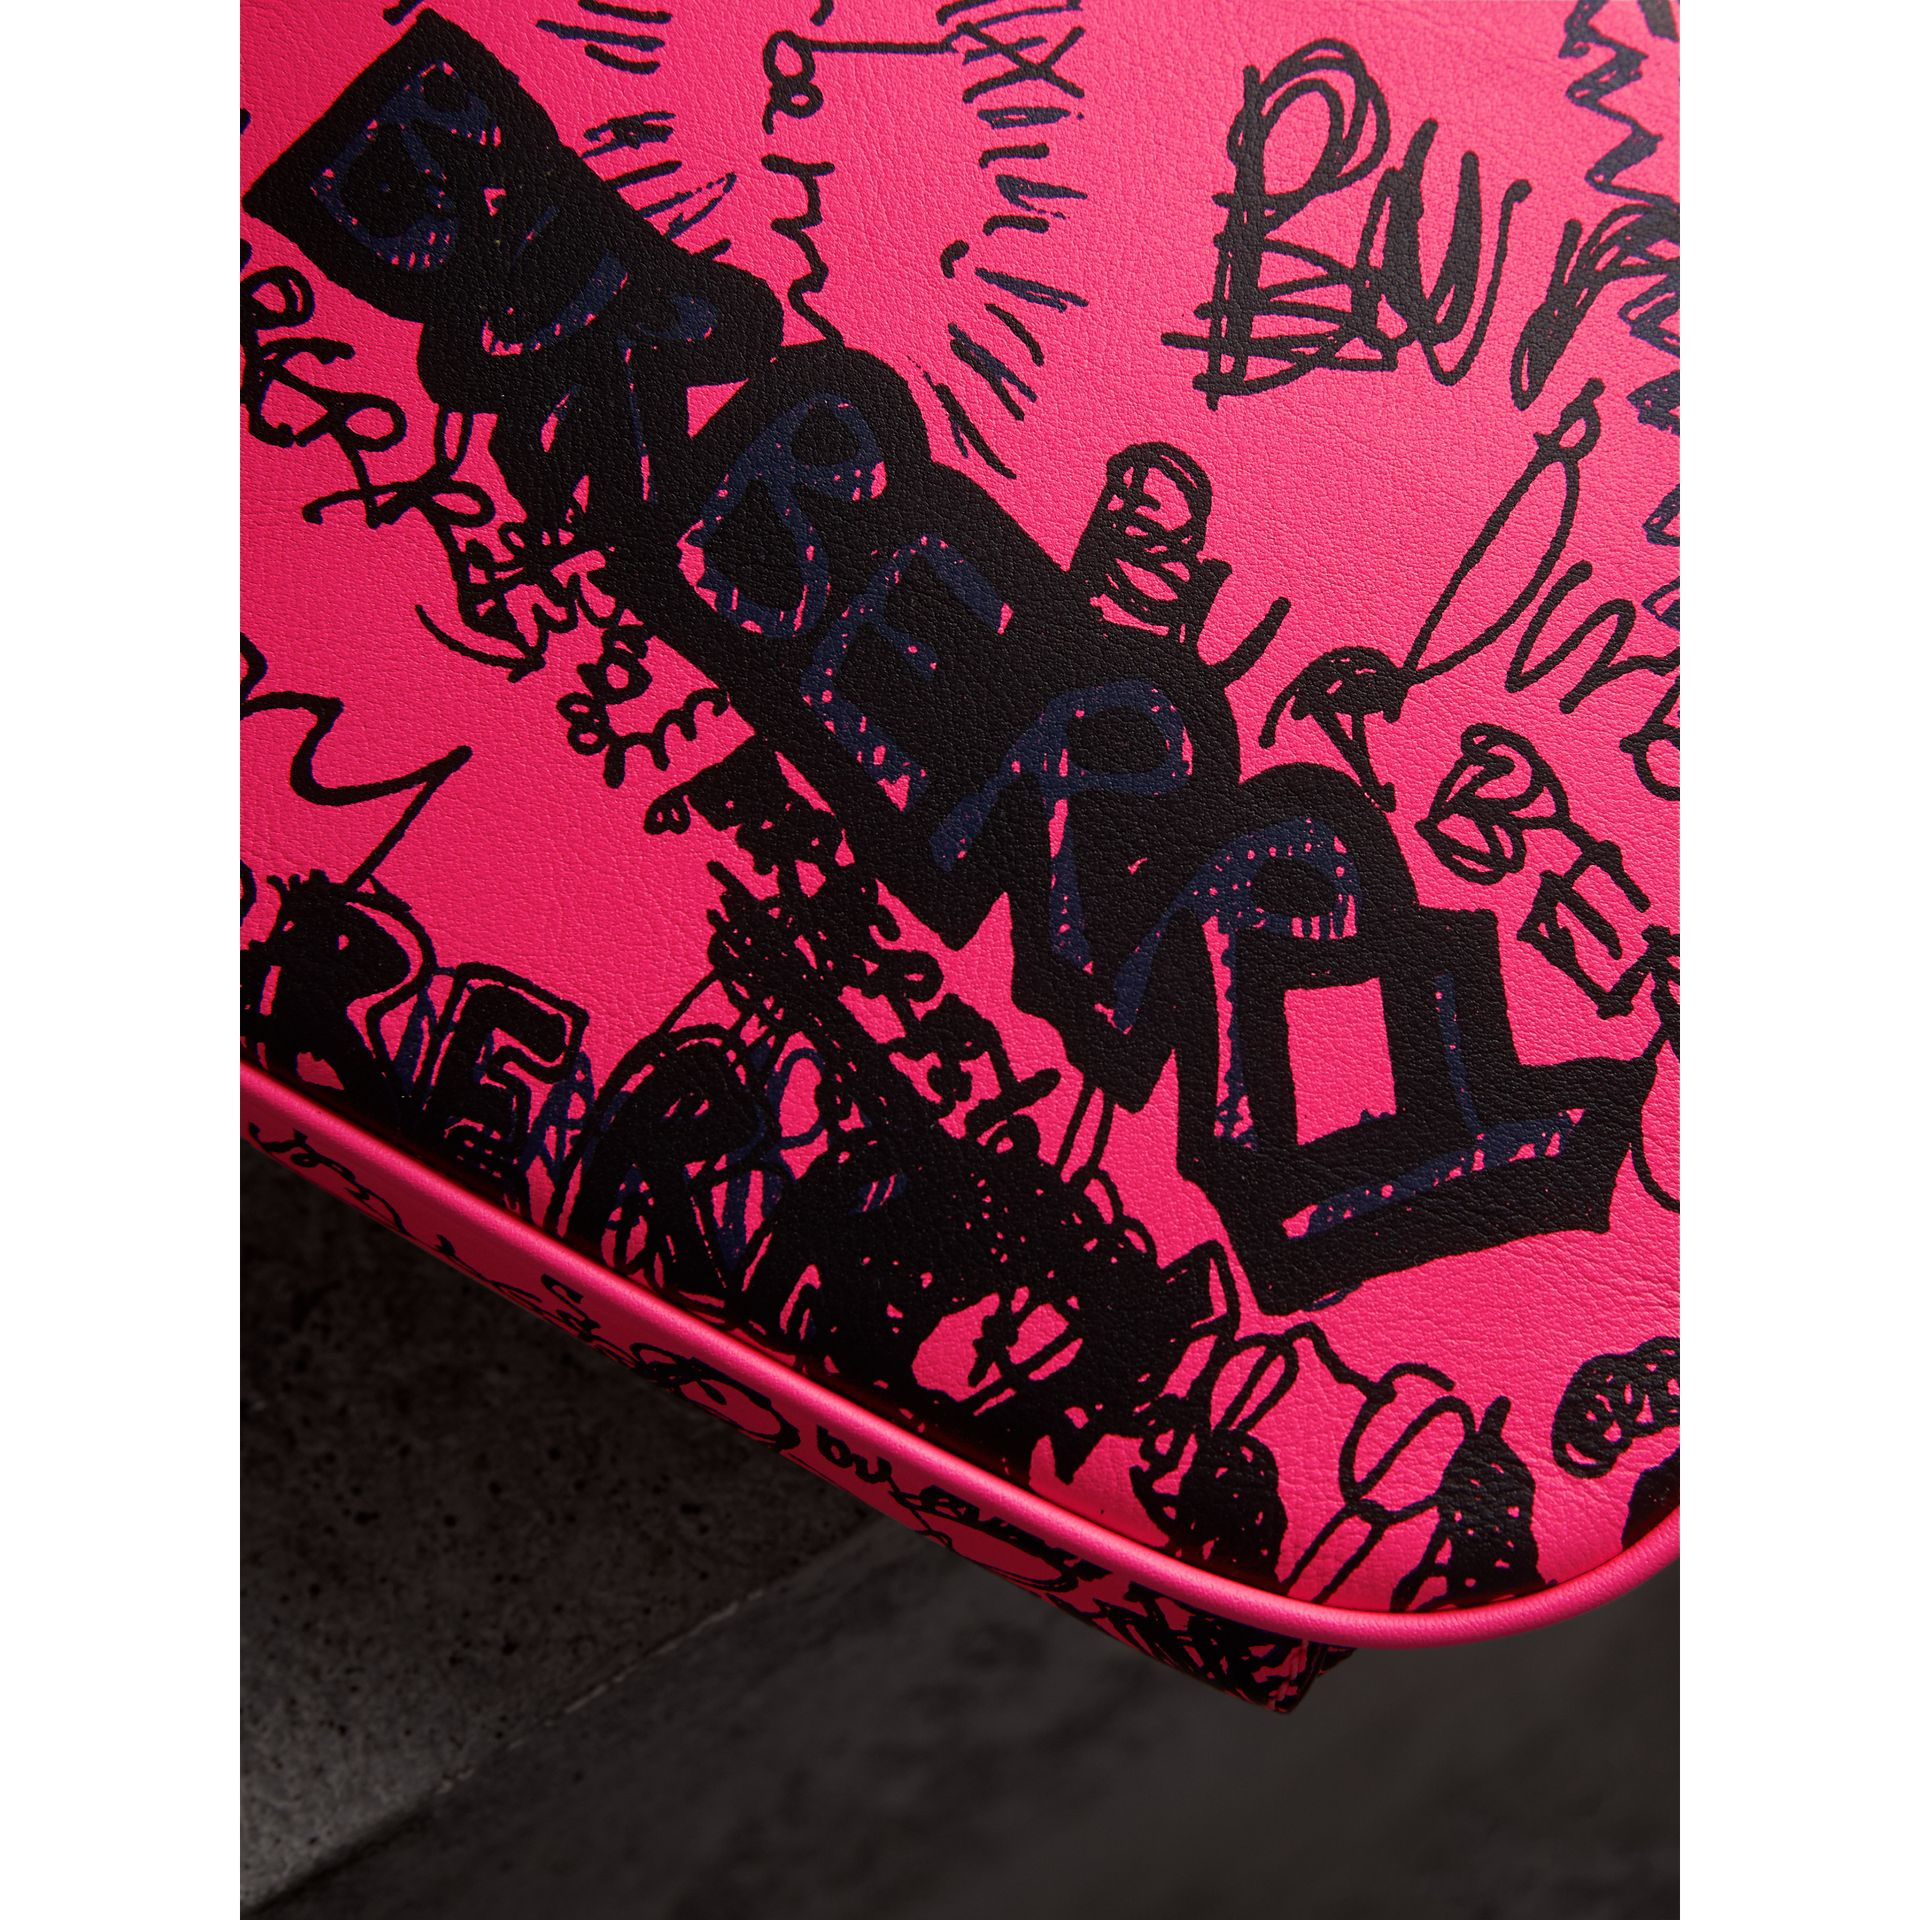 Small Doodle Print Leather Metal Frame Clutch Bag in Neon Pink - Women | Burberry United Kingdom - gallery image 1